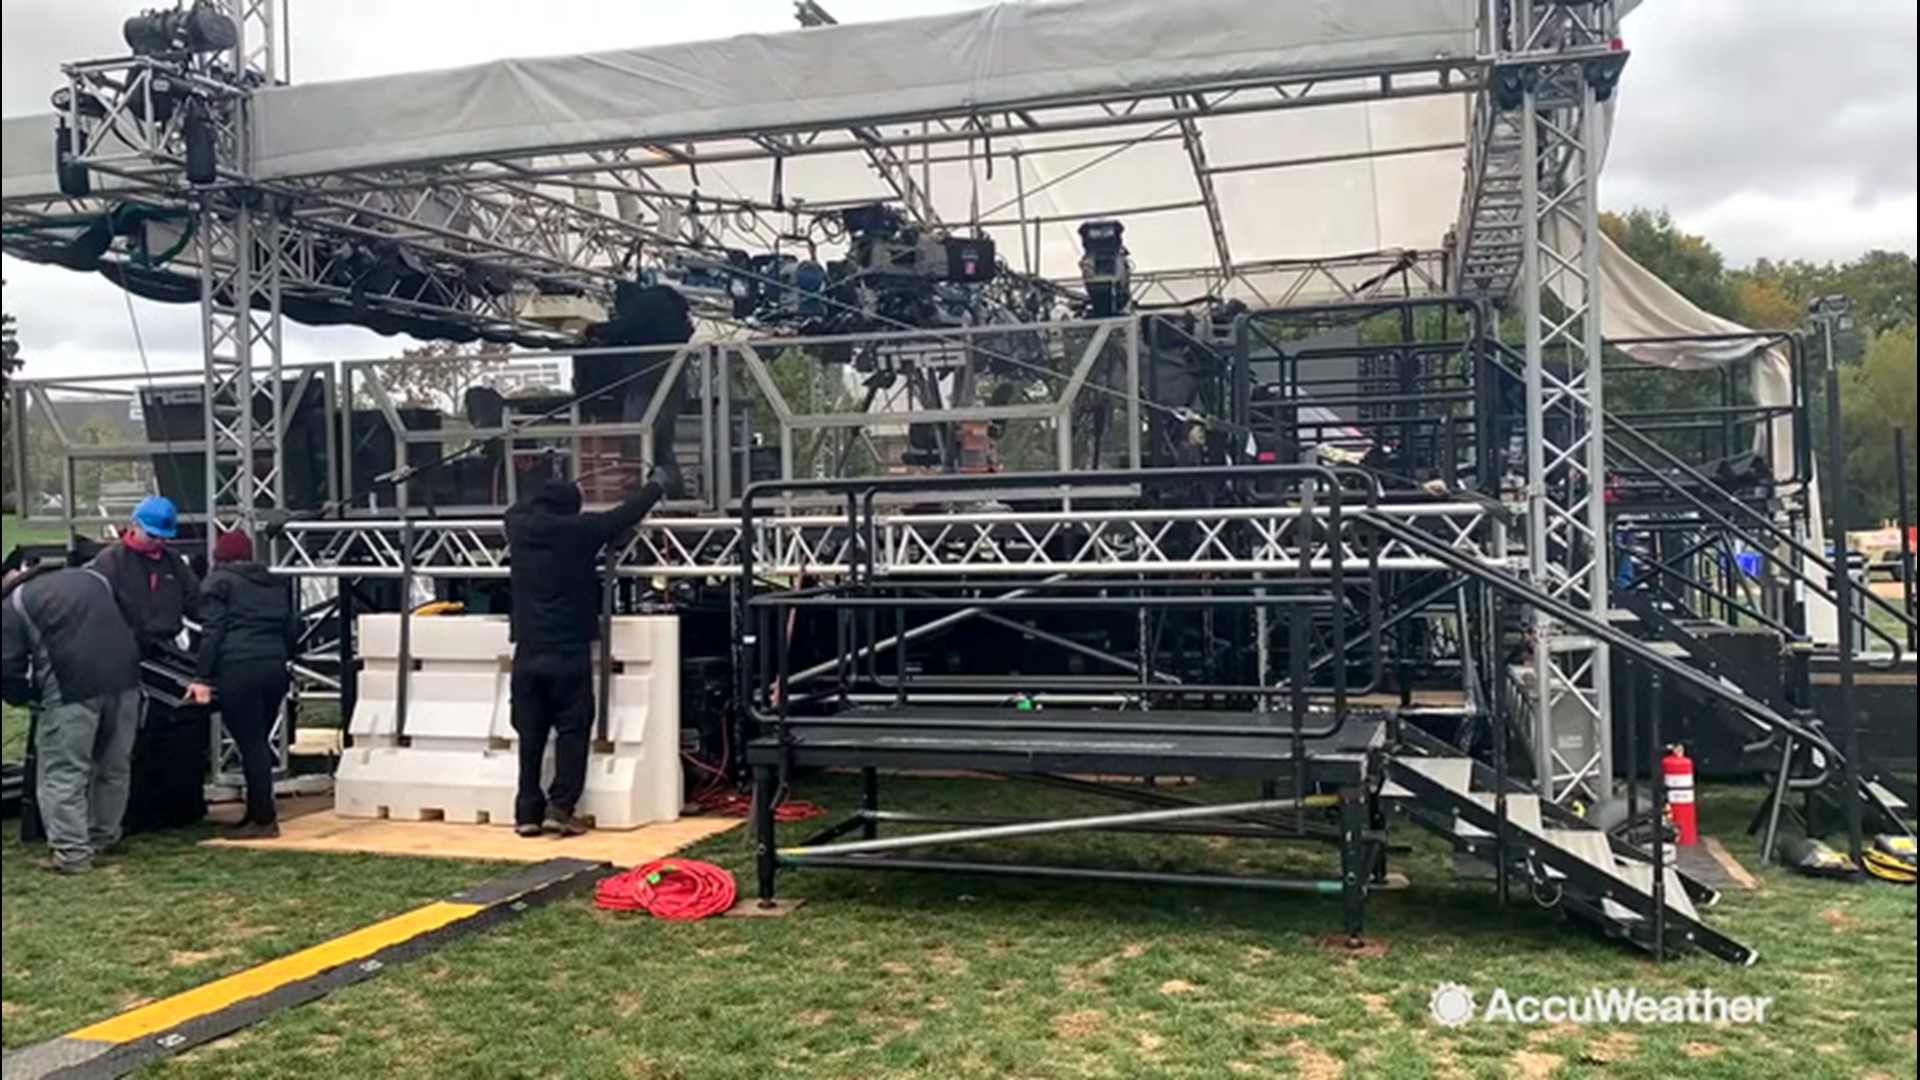 Time-lapse video of College Gameday setup at Penn State ...